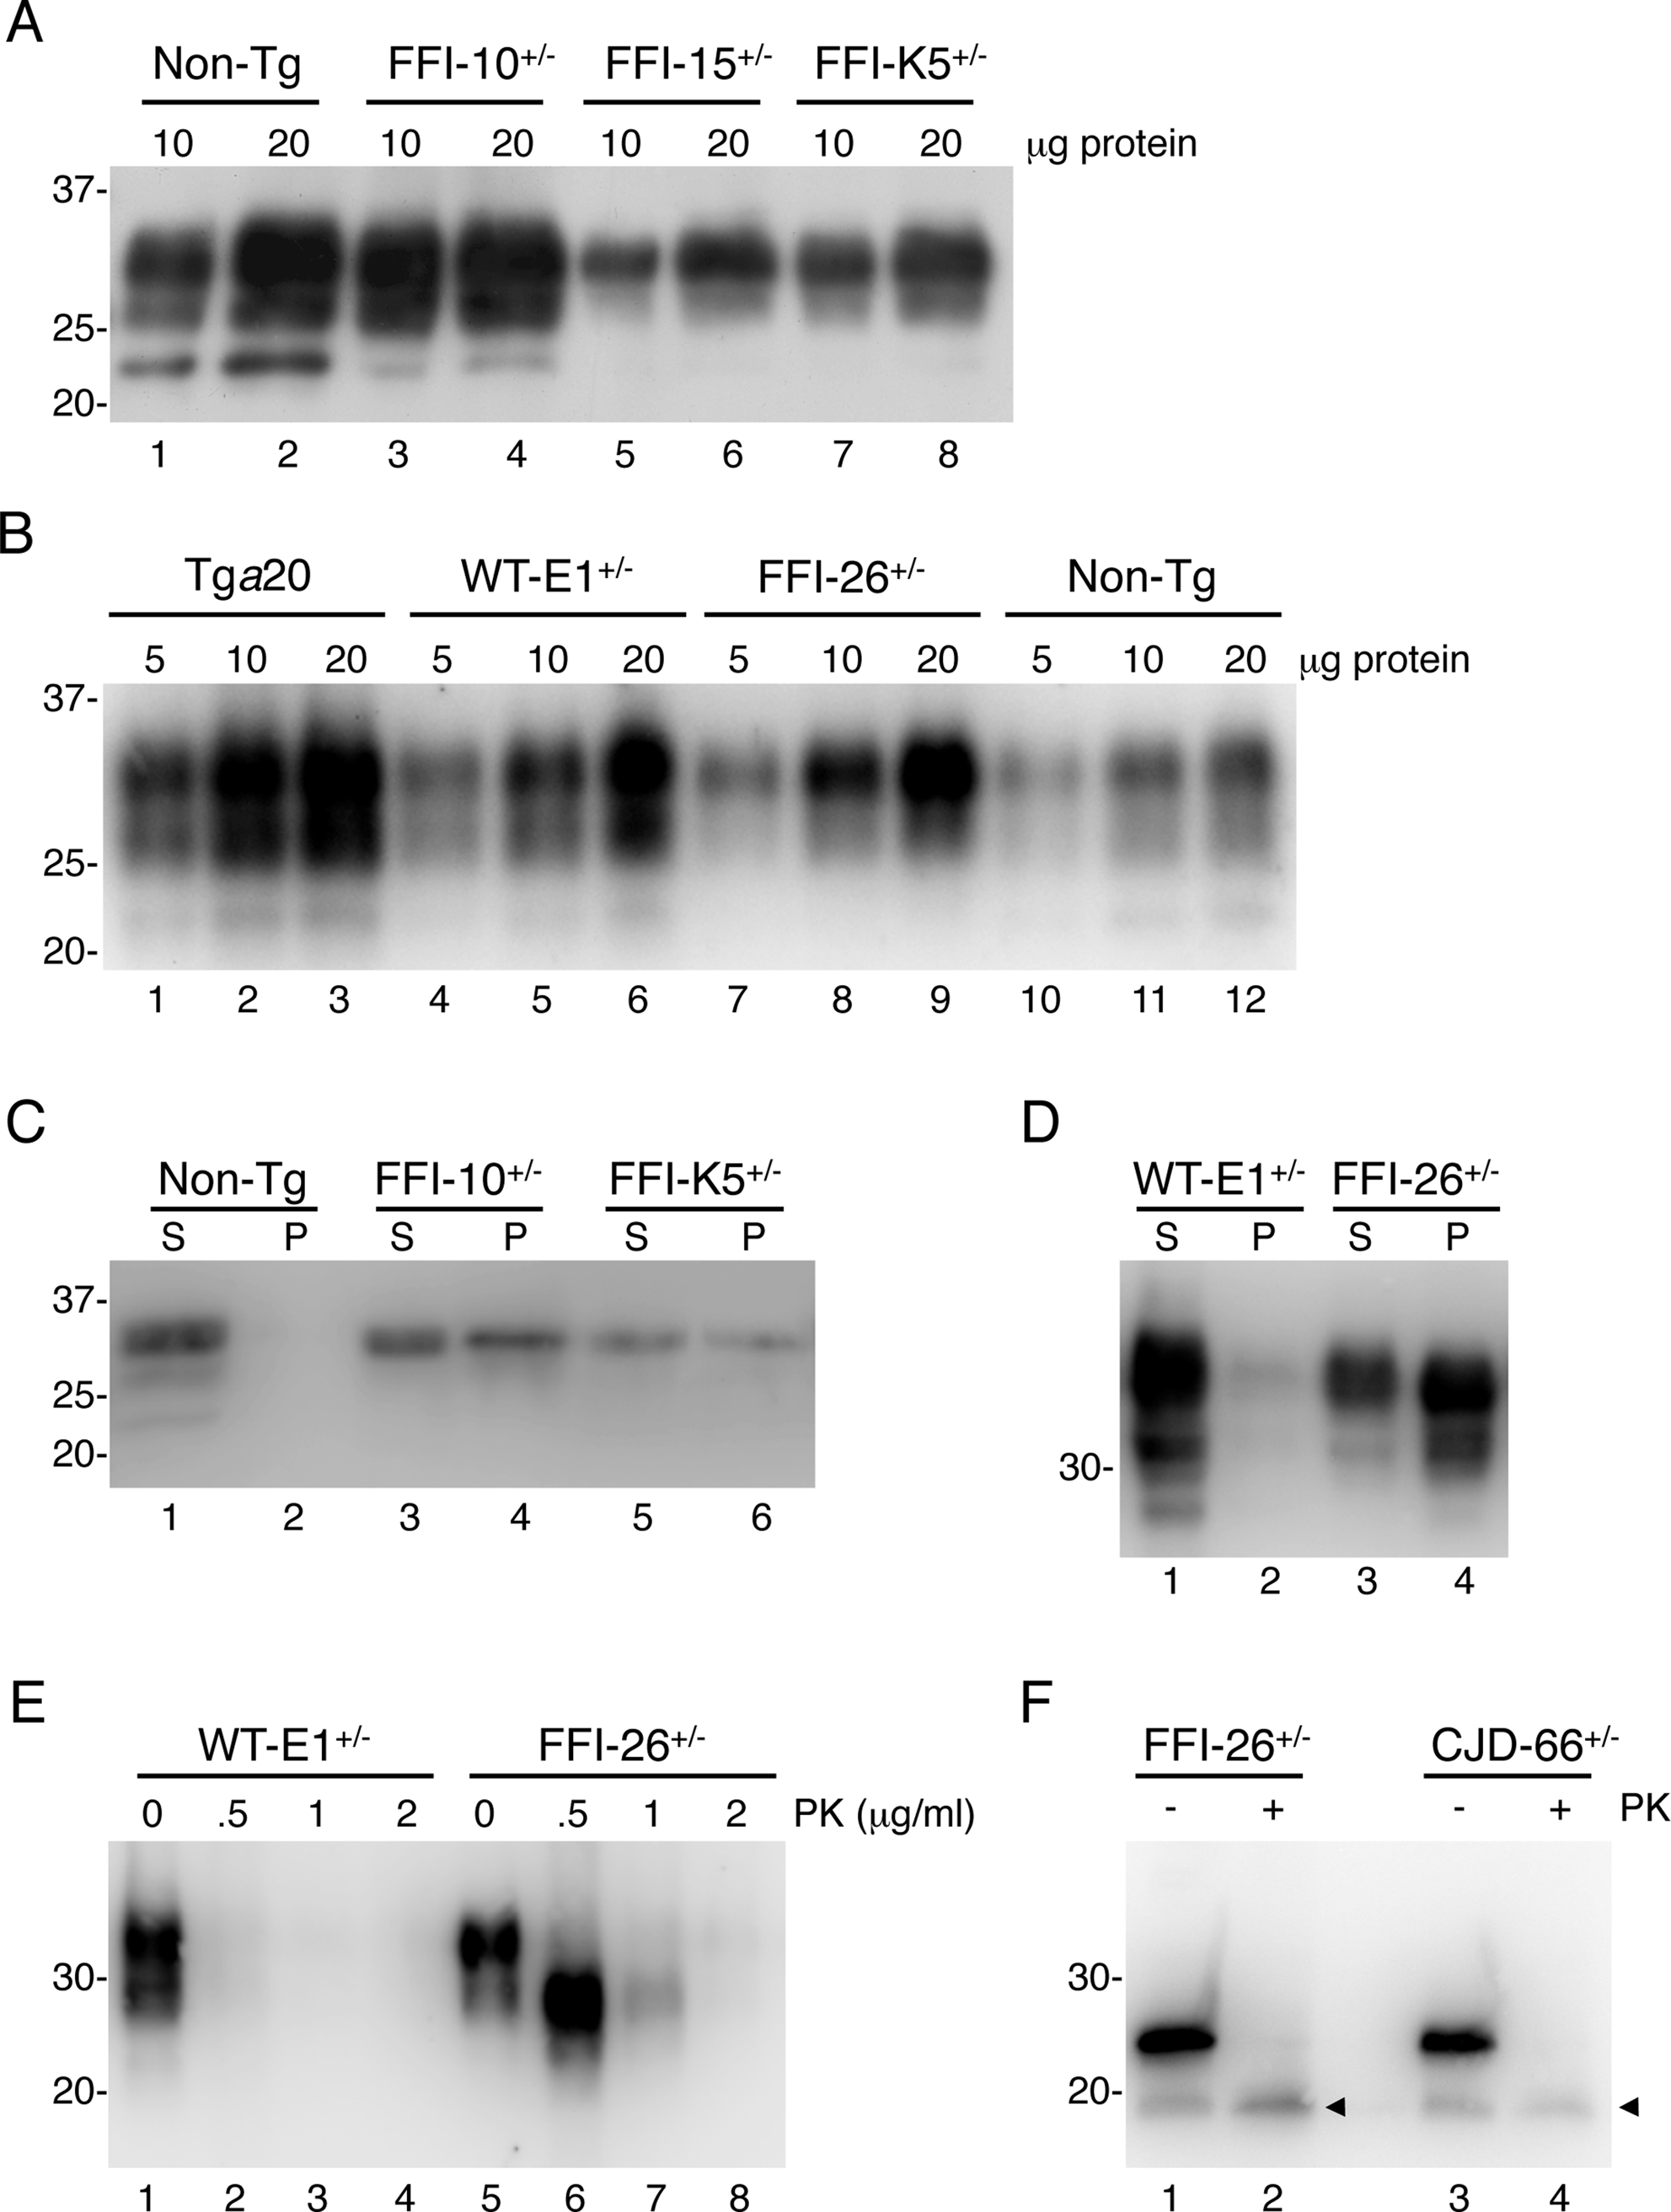 Mutant PrP in the brains of Tg(FFI) mice is insoluble and mildly protease-resistant.